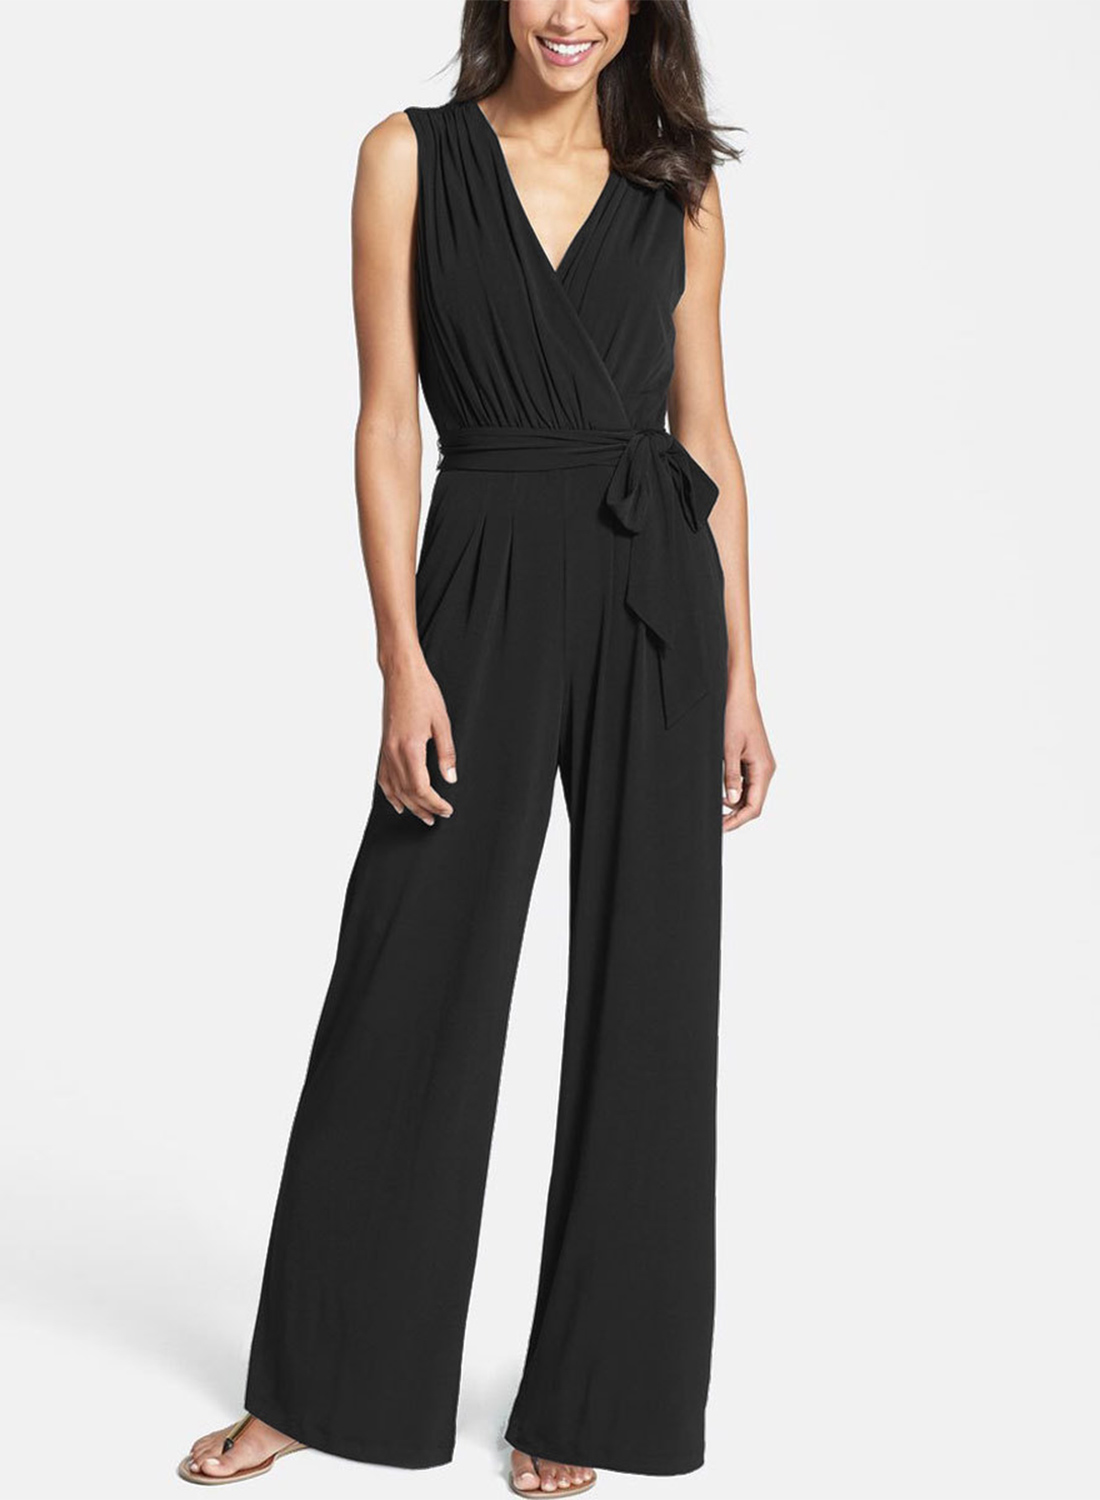 2bf346fa6ceb Women s Fashion Solid V Neck Sleeveless Wide-Leg Jumpsuit with Belt  STYLESIMO.com. Loading zoom